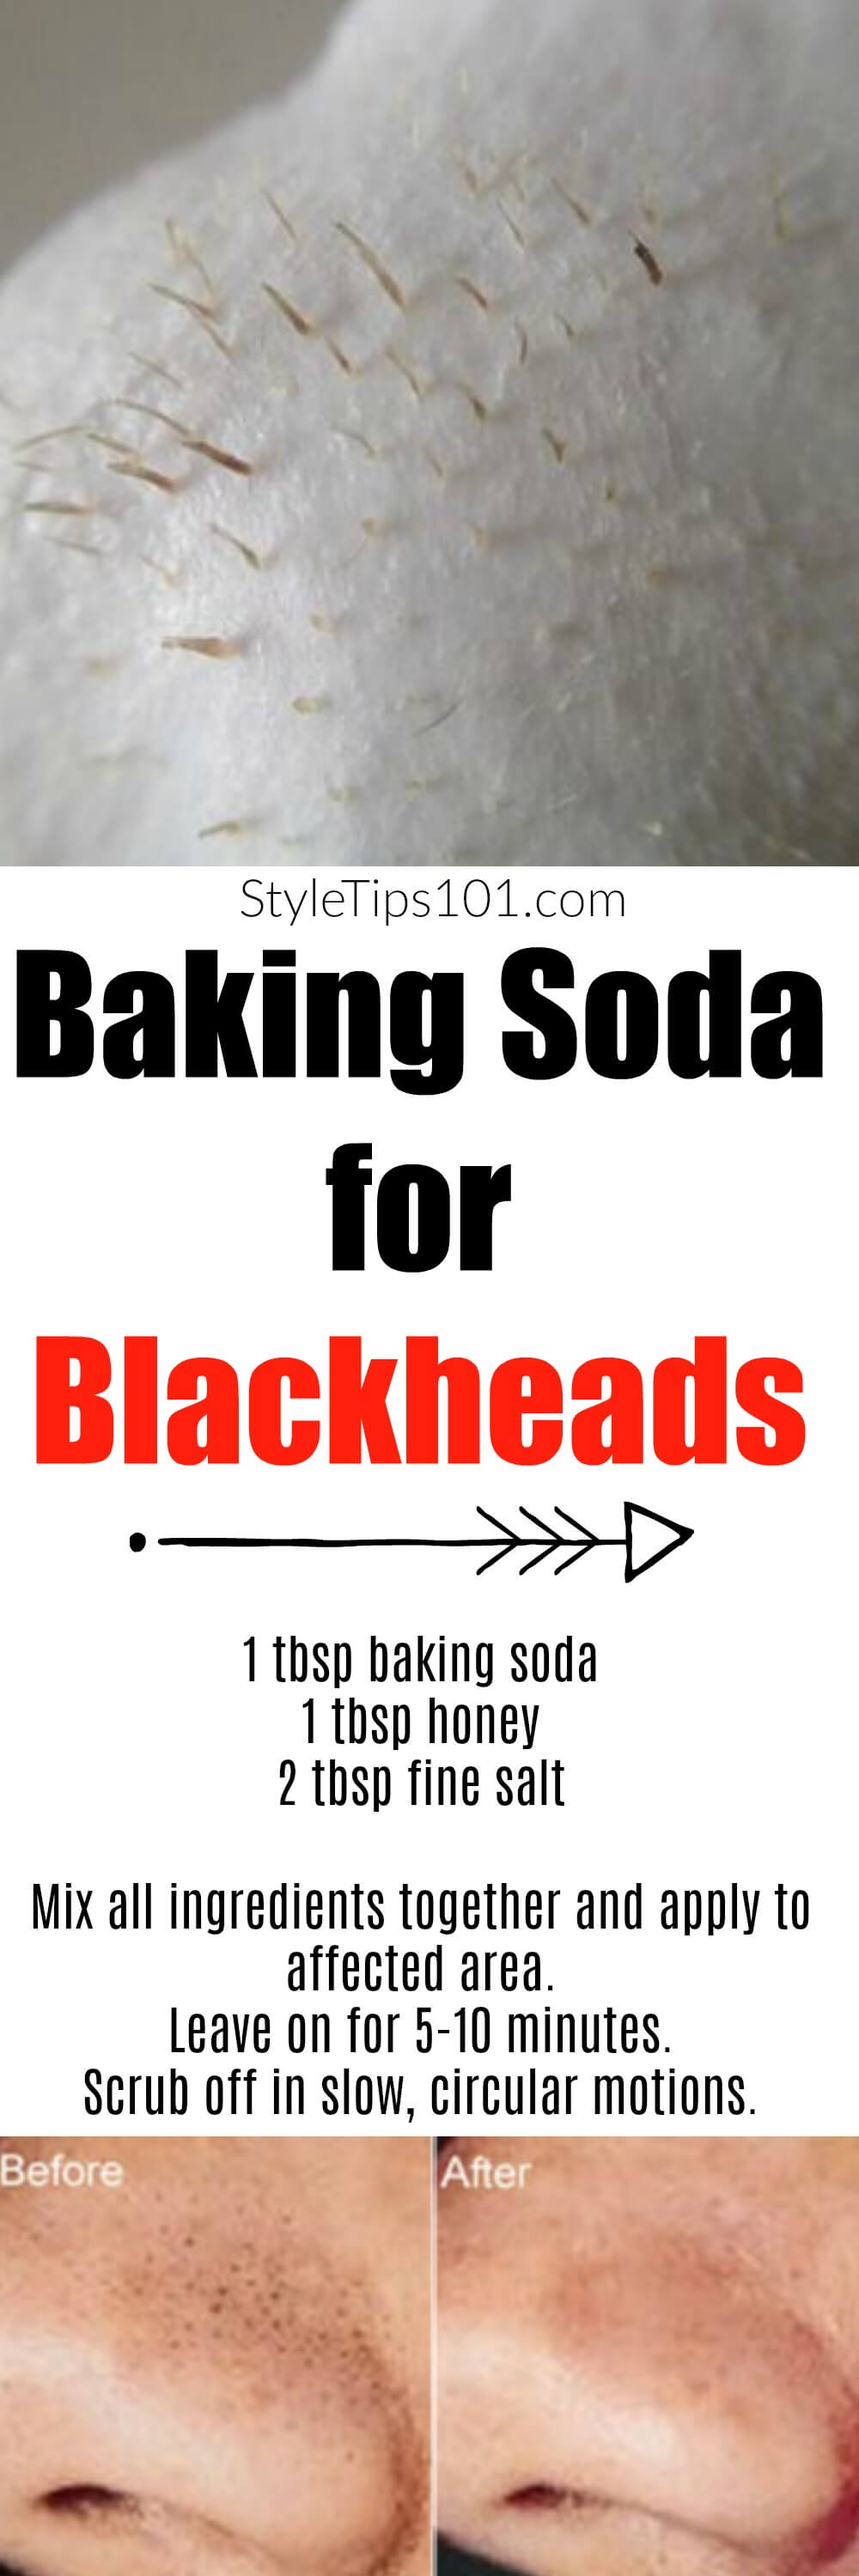 how to use glue for blackheads